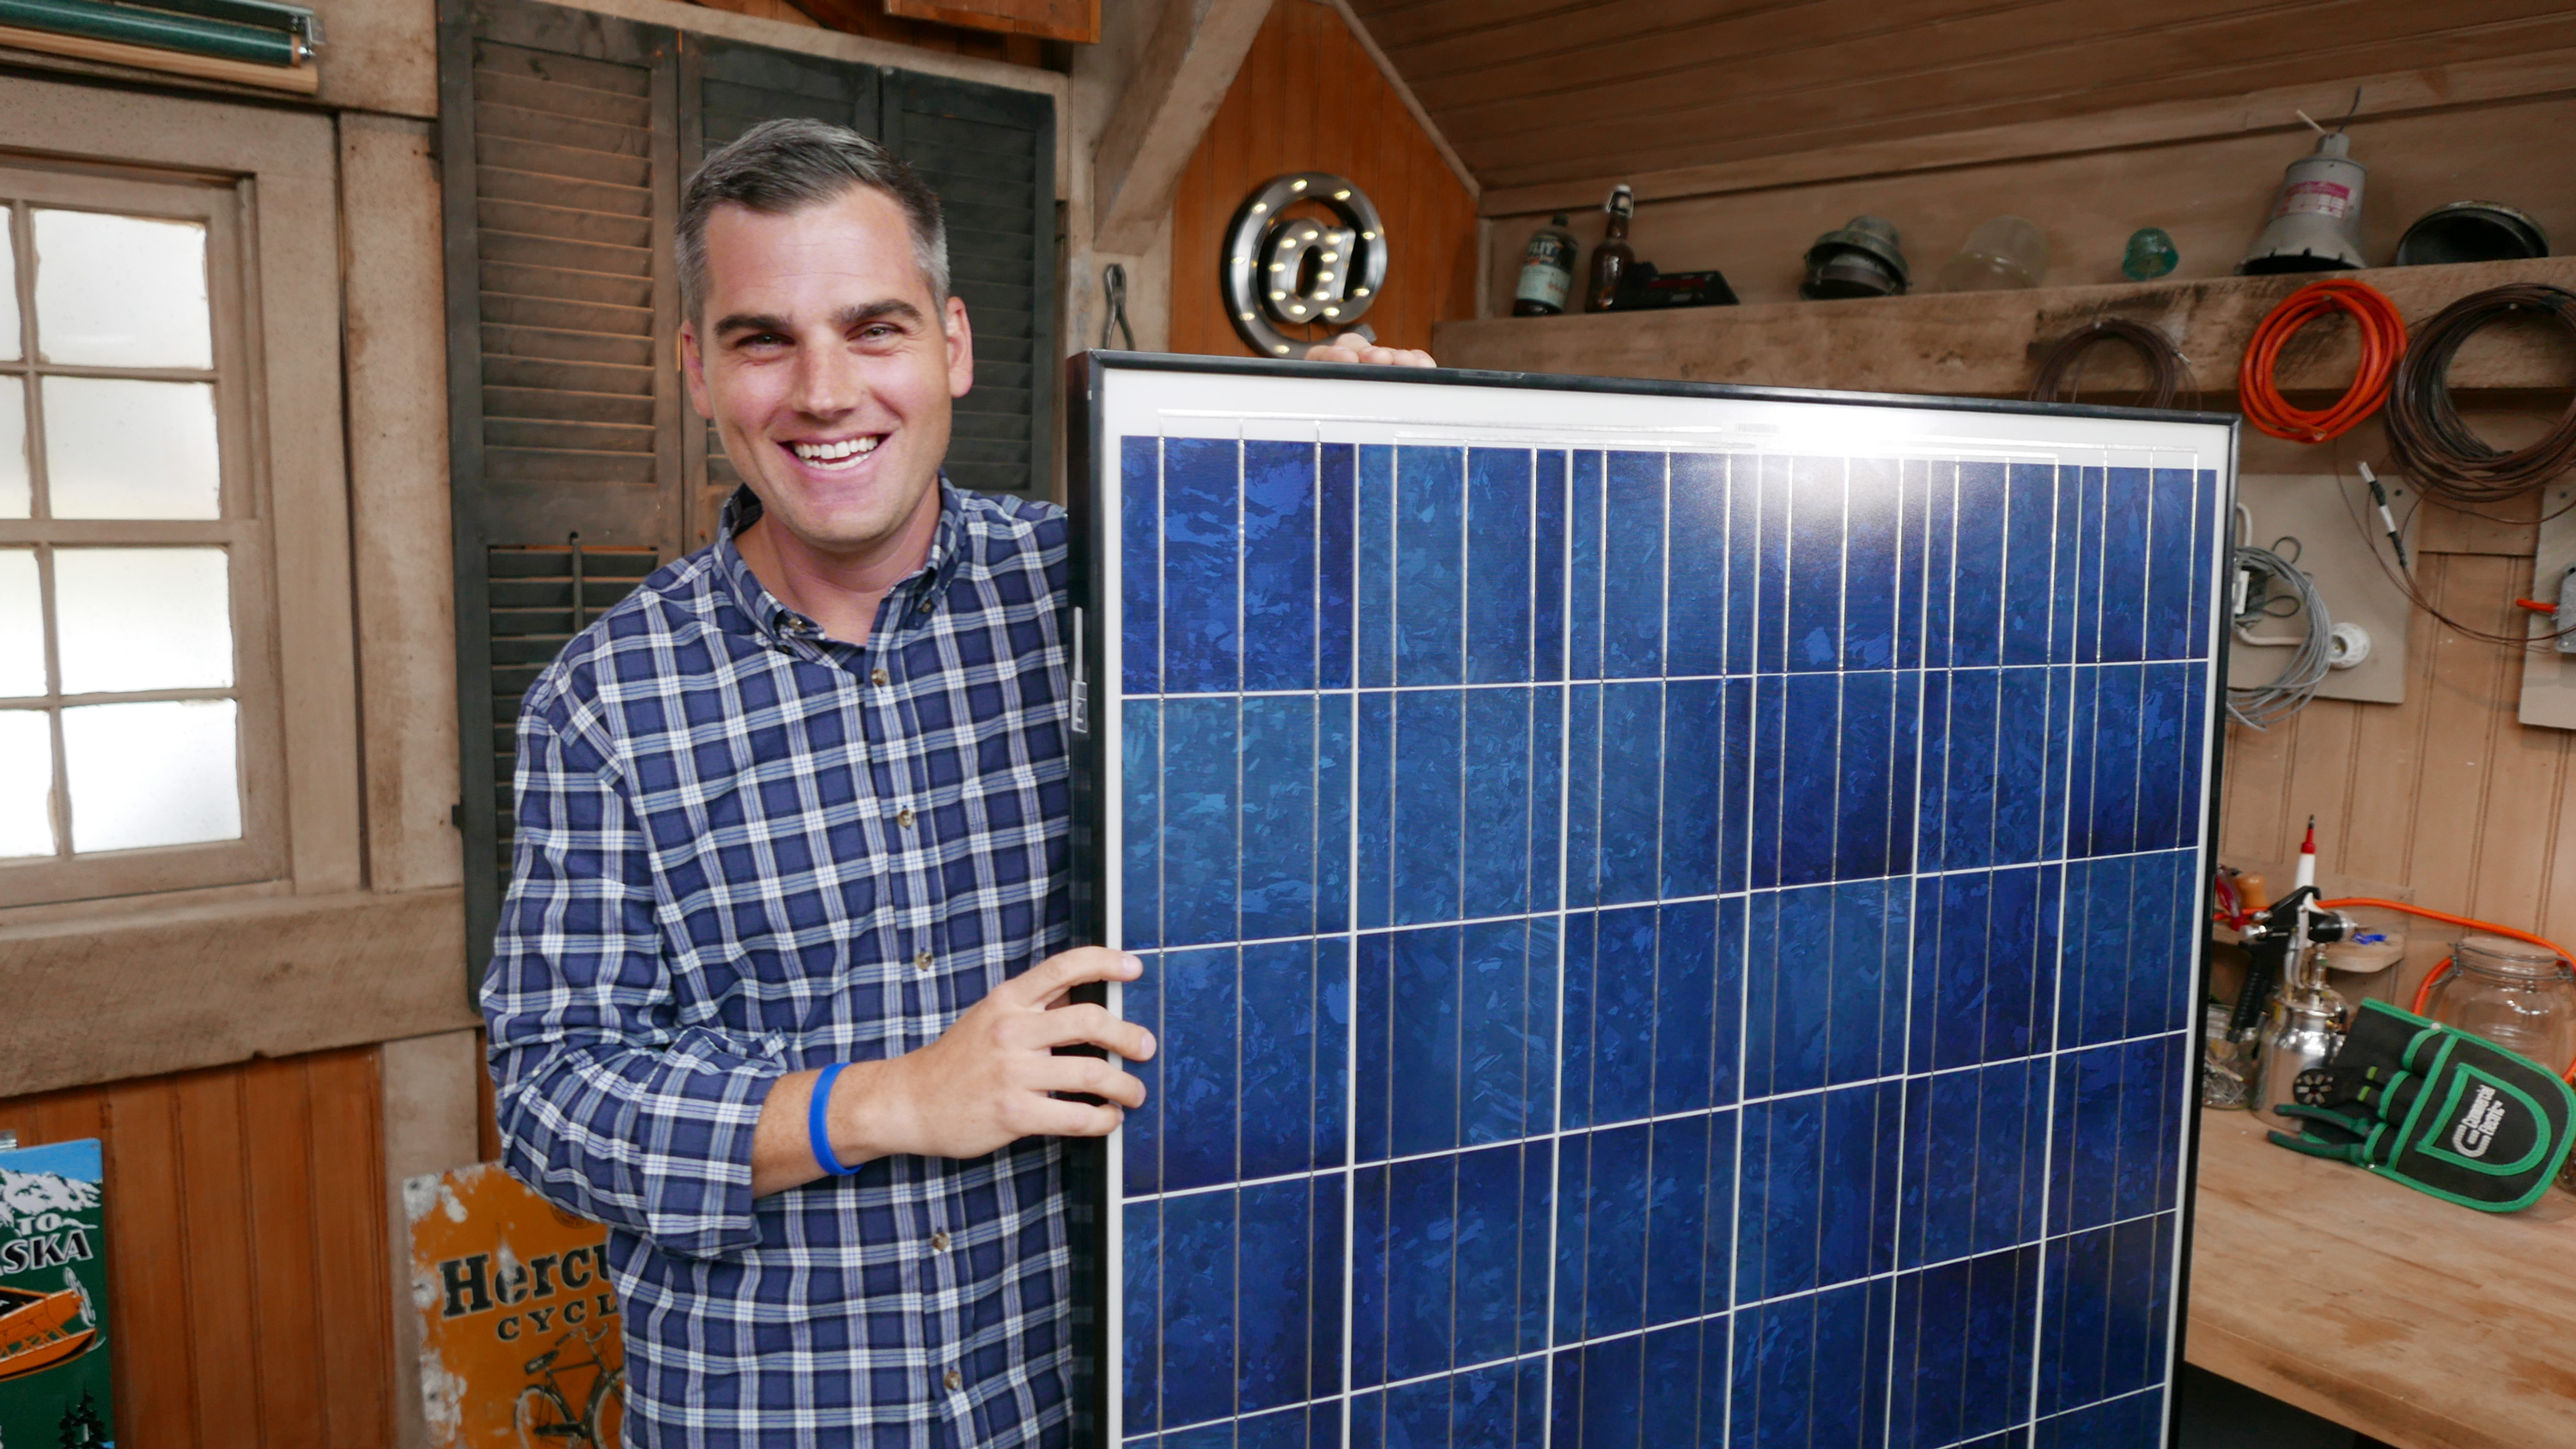 Holding a solar panel